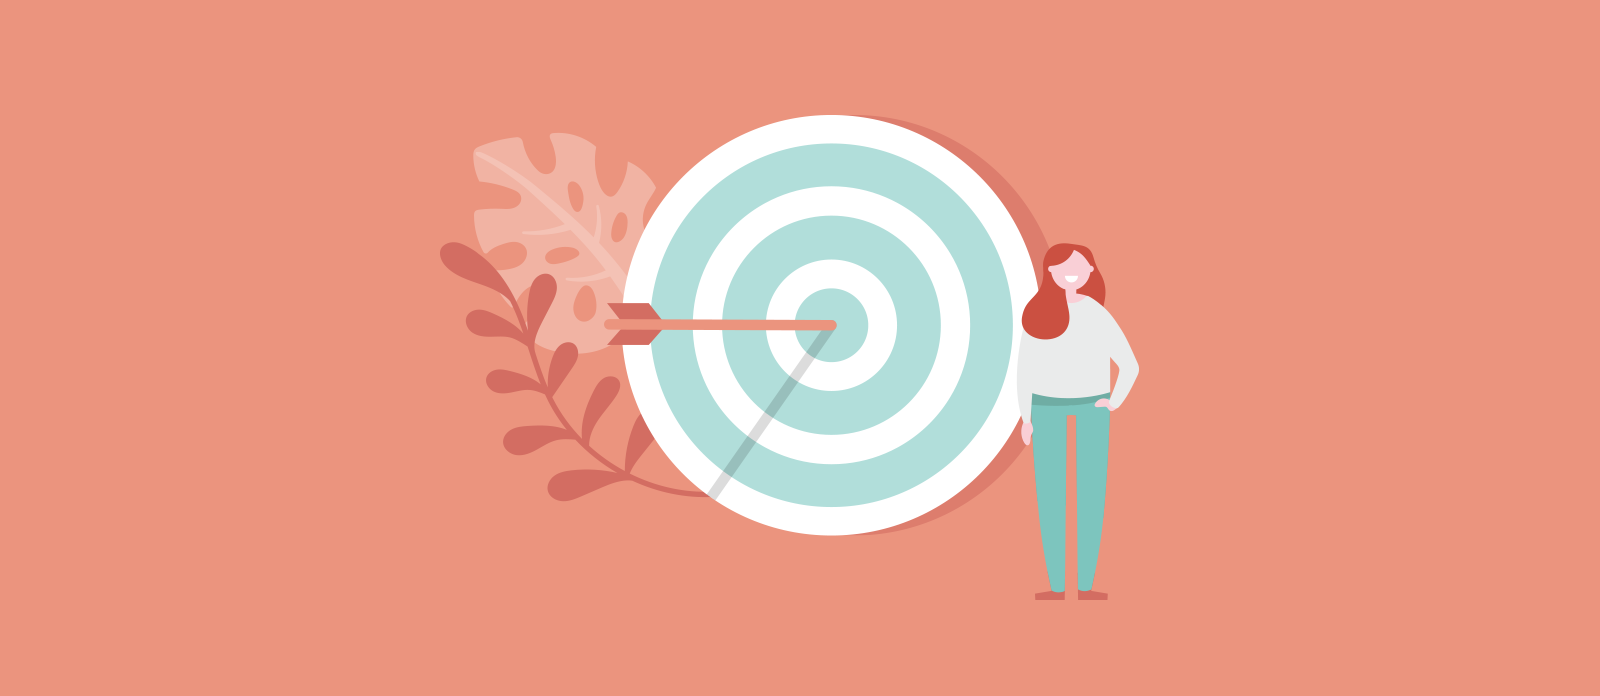 10 career goals for project managers teamgantt